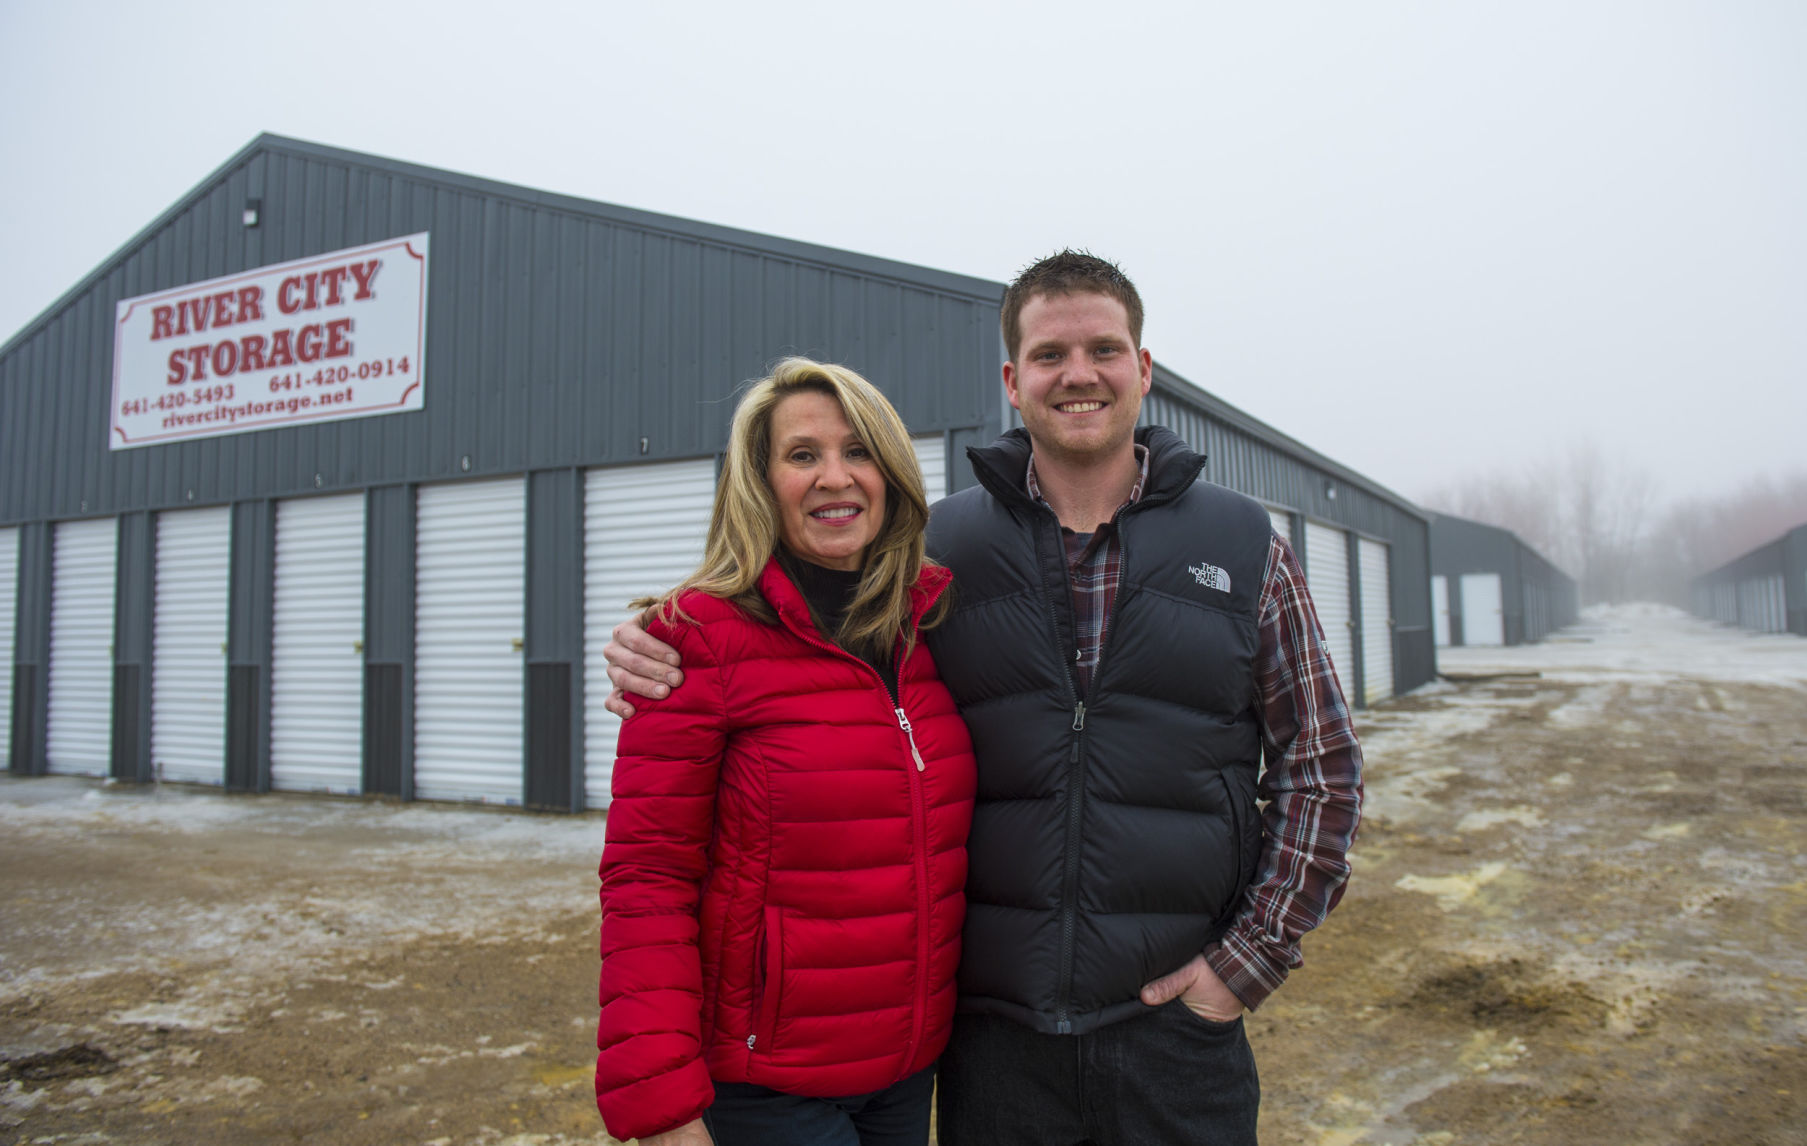 Mason City Mom, Son Fill Storage Need With New Business